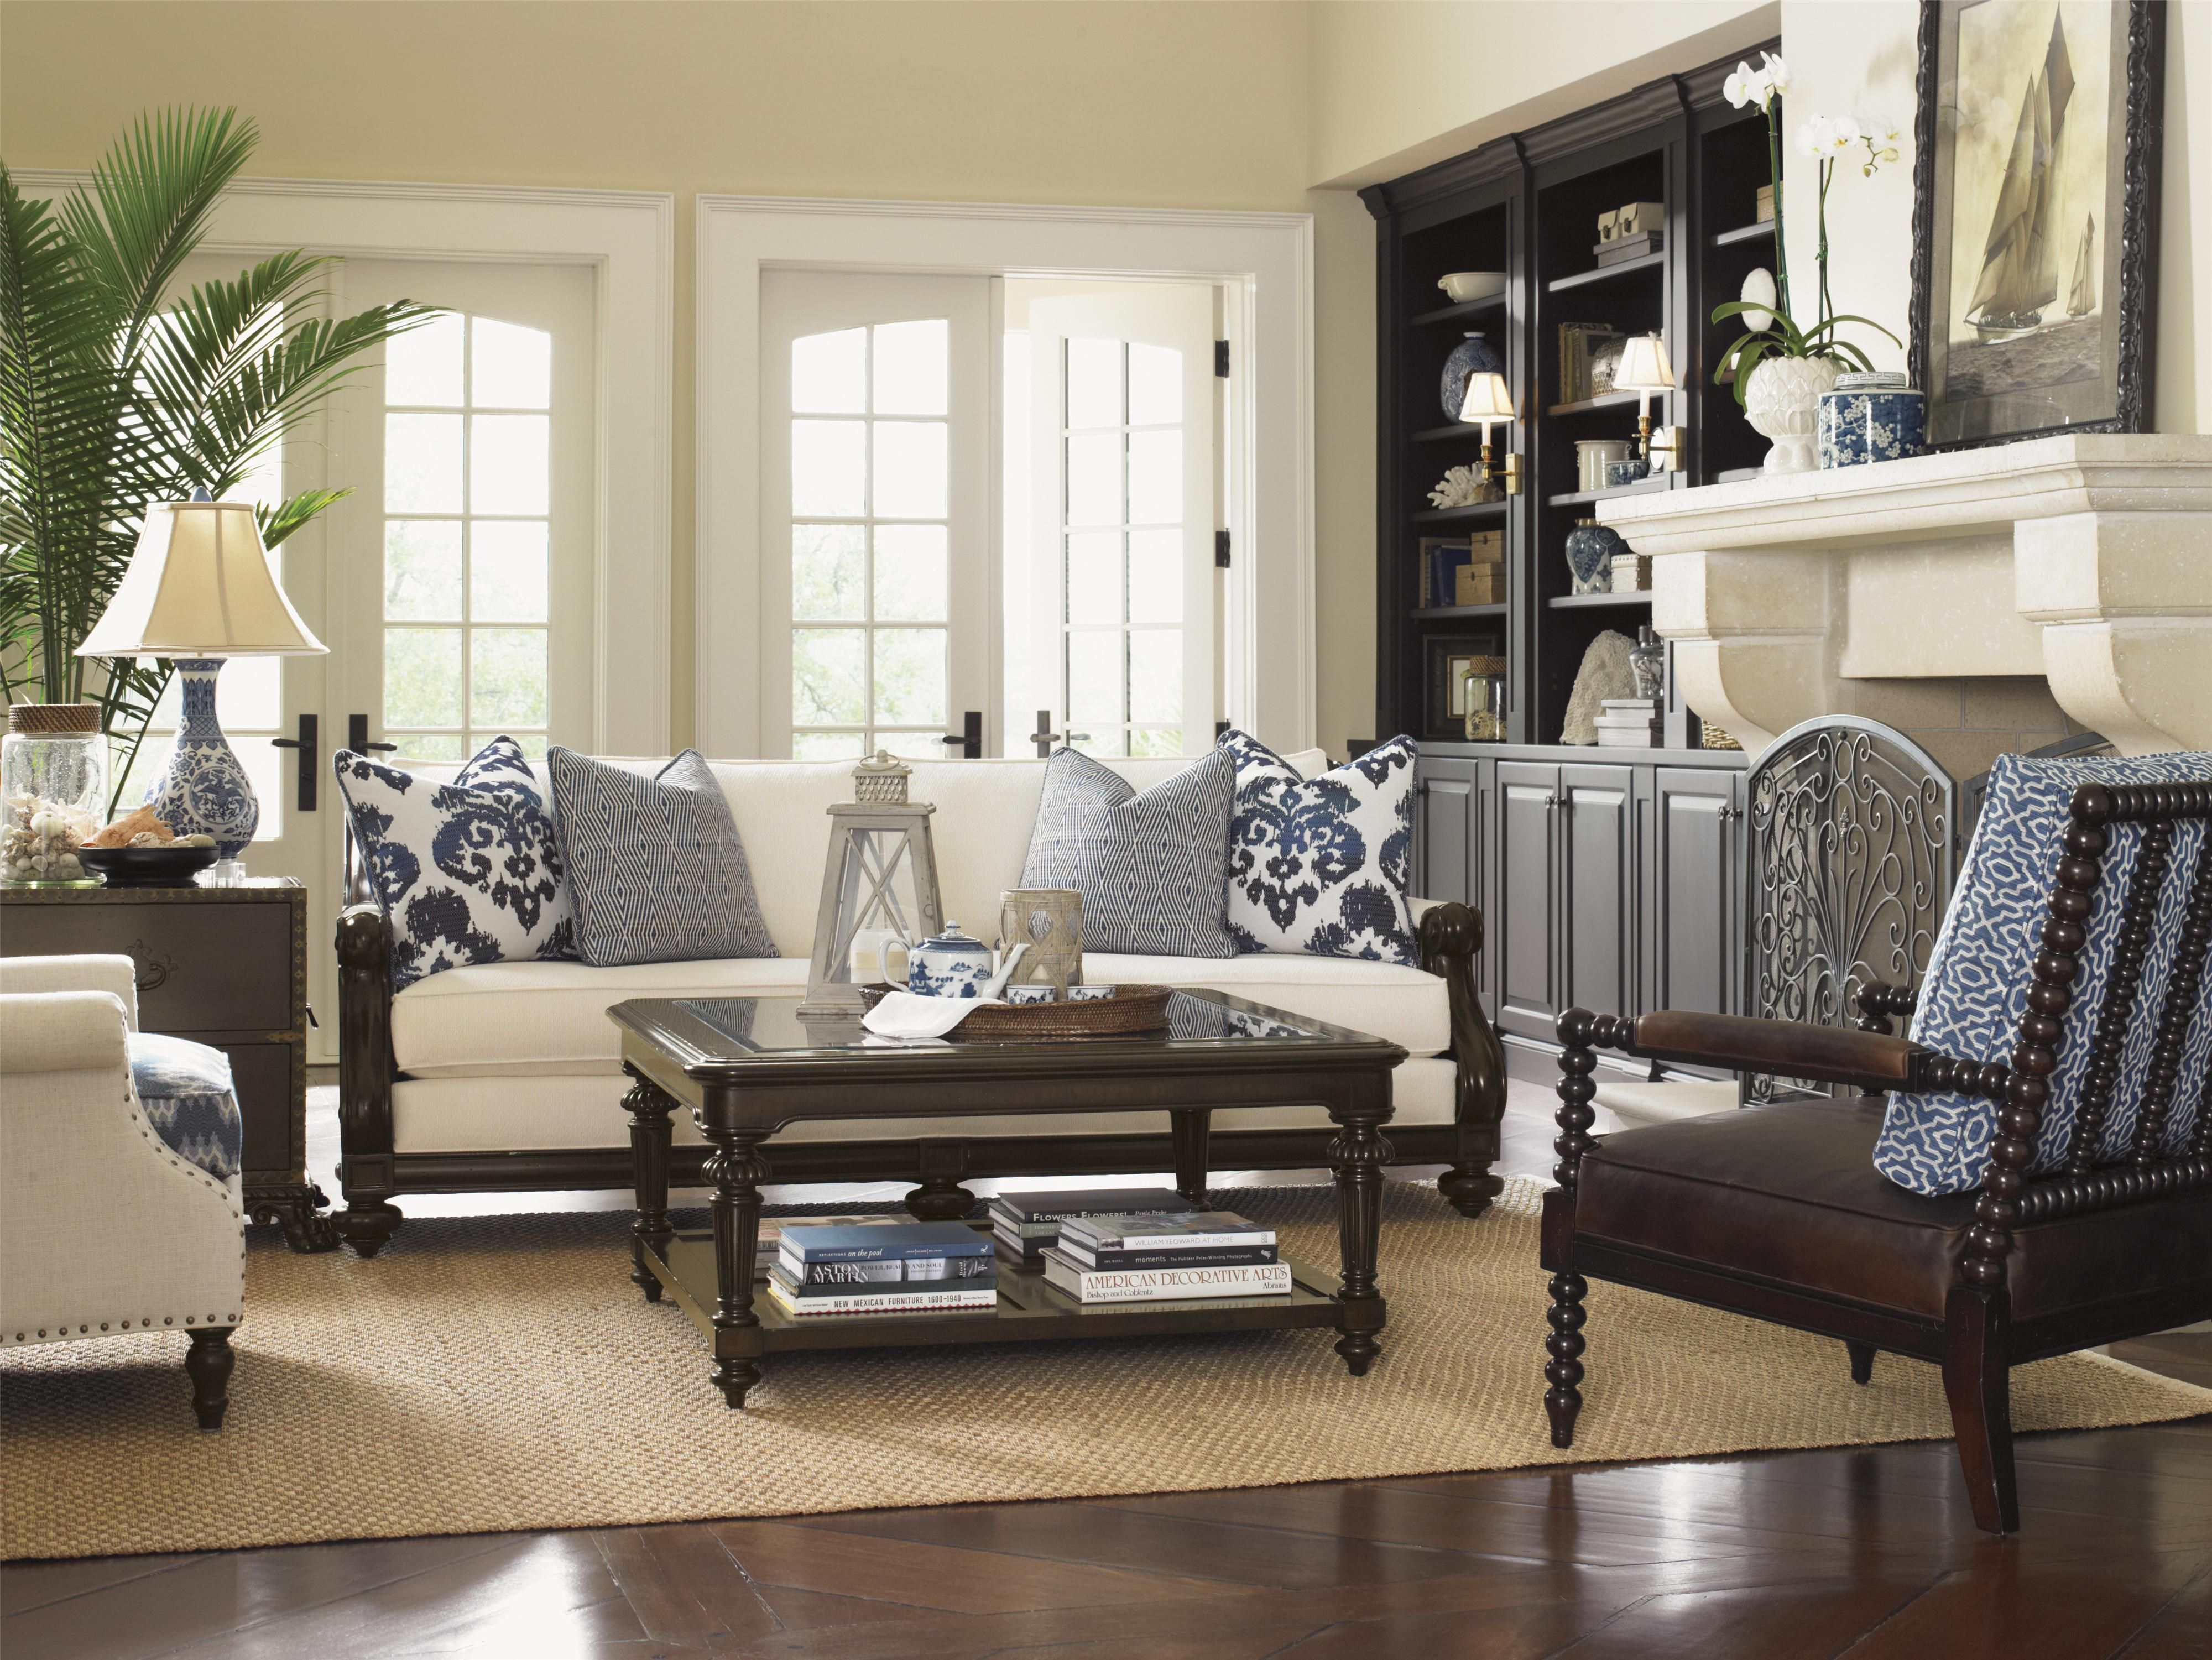 Island Traditions Custom Fabric By Tommy Bahama Home Design